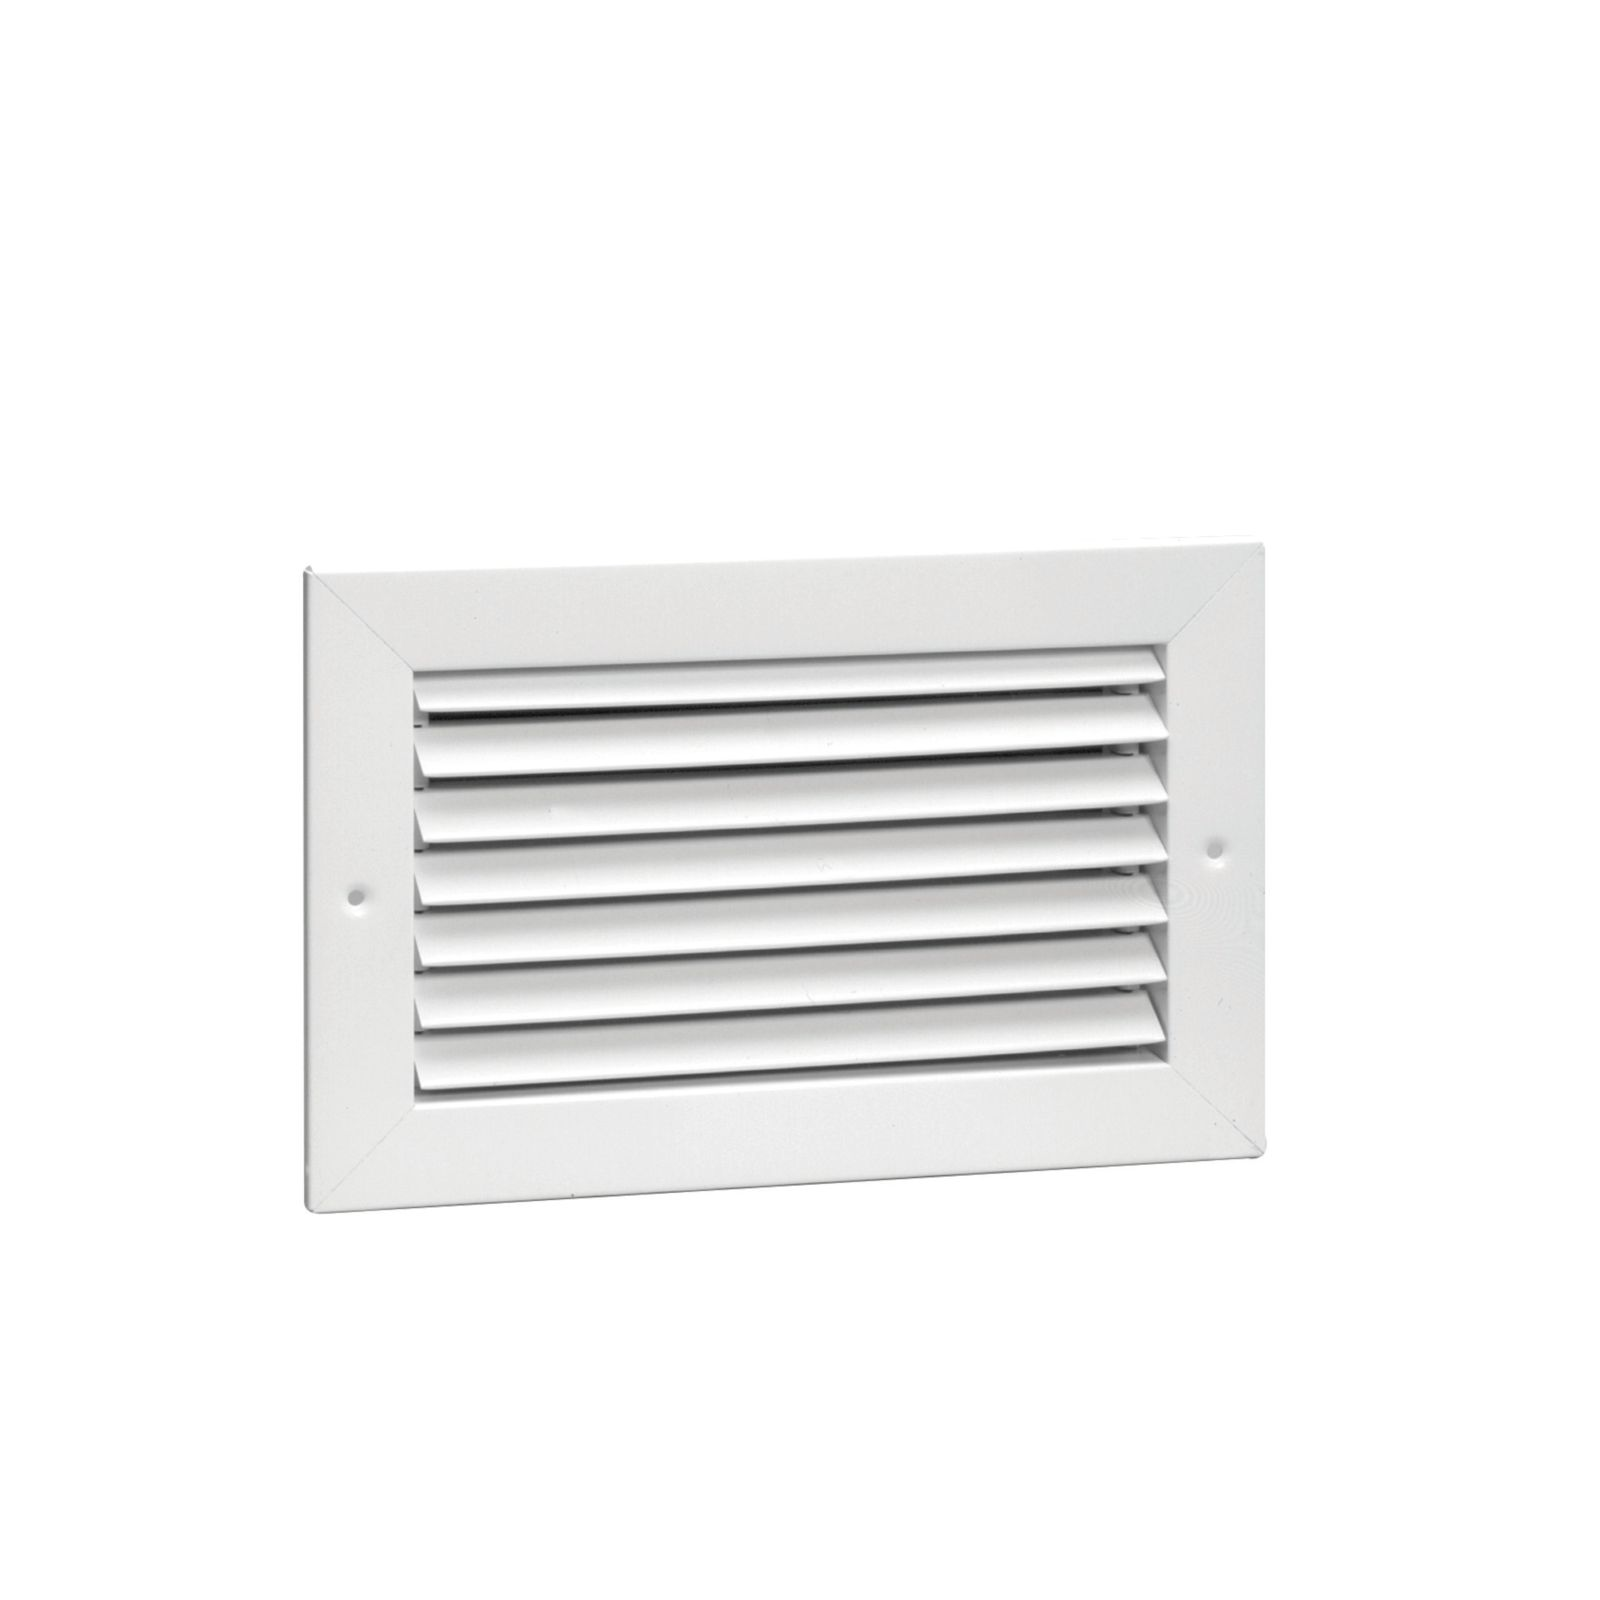 "Hart & Cooley 011823 - Steel Return Air Grille, 35-Degree Horizontal Fixed Blade, White Finish, 30"" X 20"""